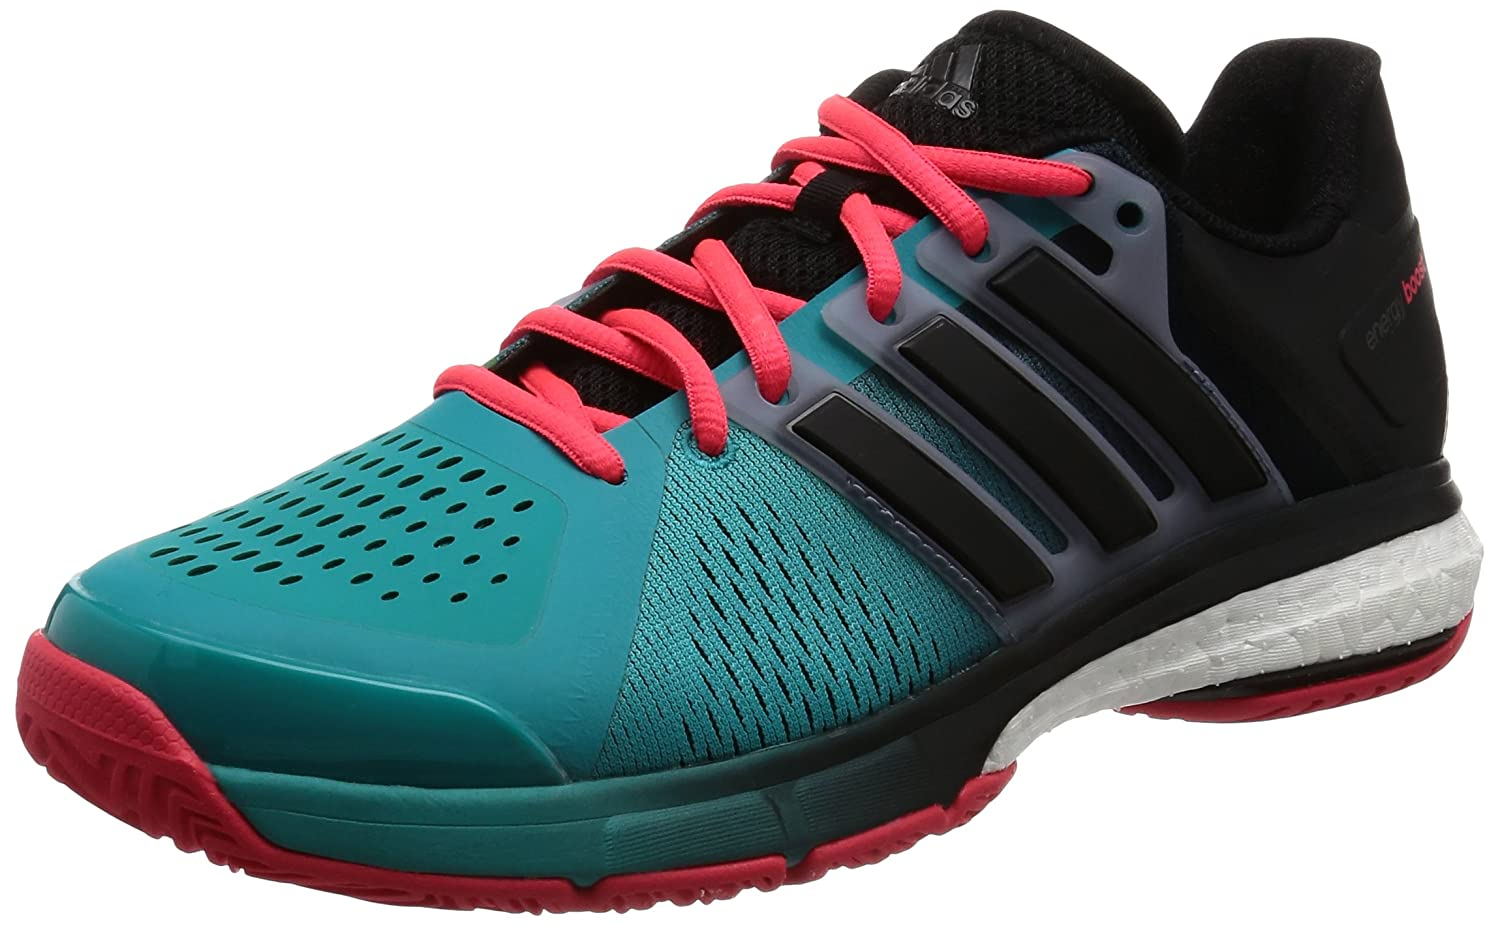 c70568a13 adidas Unisex Adults  Tennis Energy Boost Sneakers Multicolour Size  11   Amazon.co.uk  Shoes   Bags